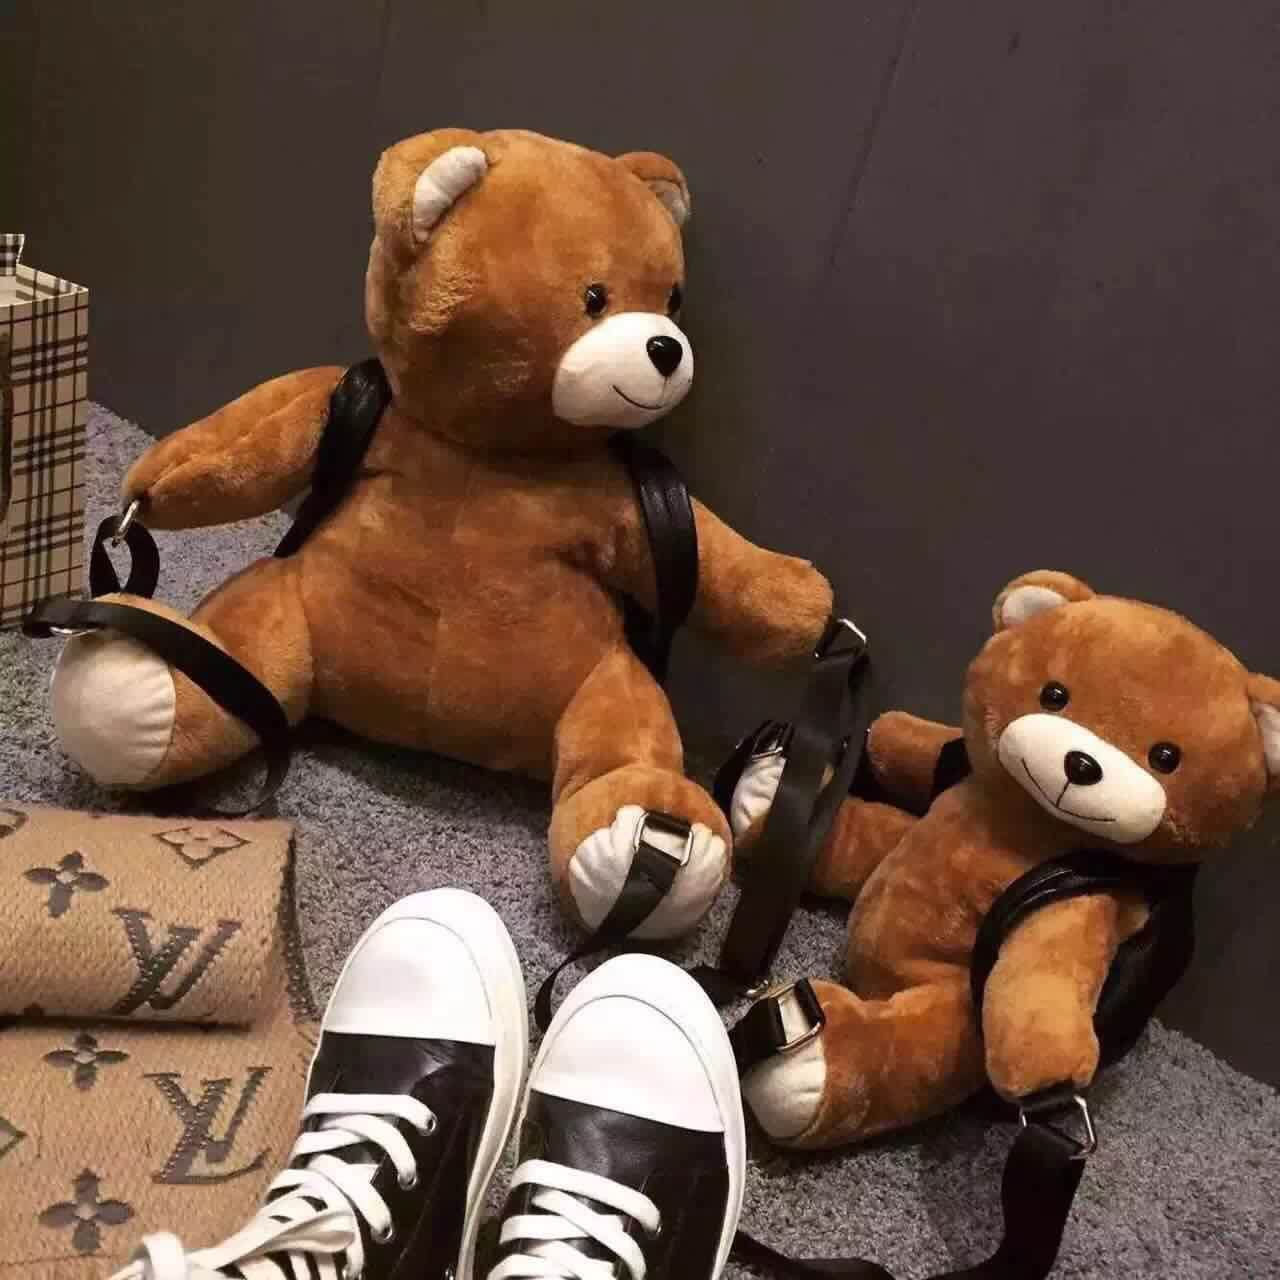 Winter Women/girls Fashion Leather Backpack Plush Teddy Bear Backpack/school Bag Fmous Brand Leisure Small Backpack Bag #2